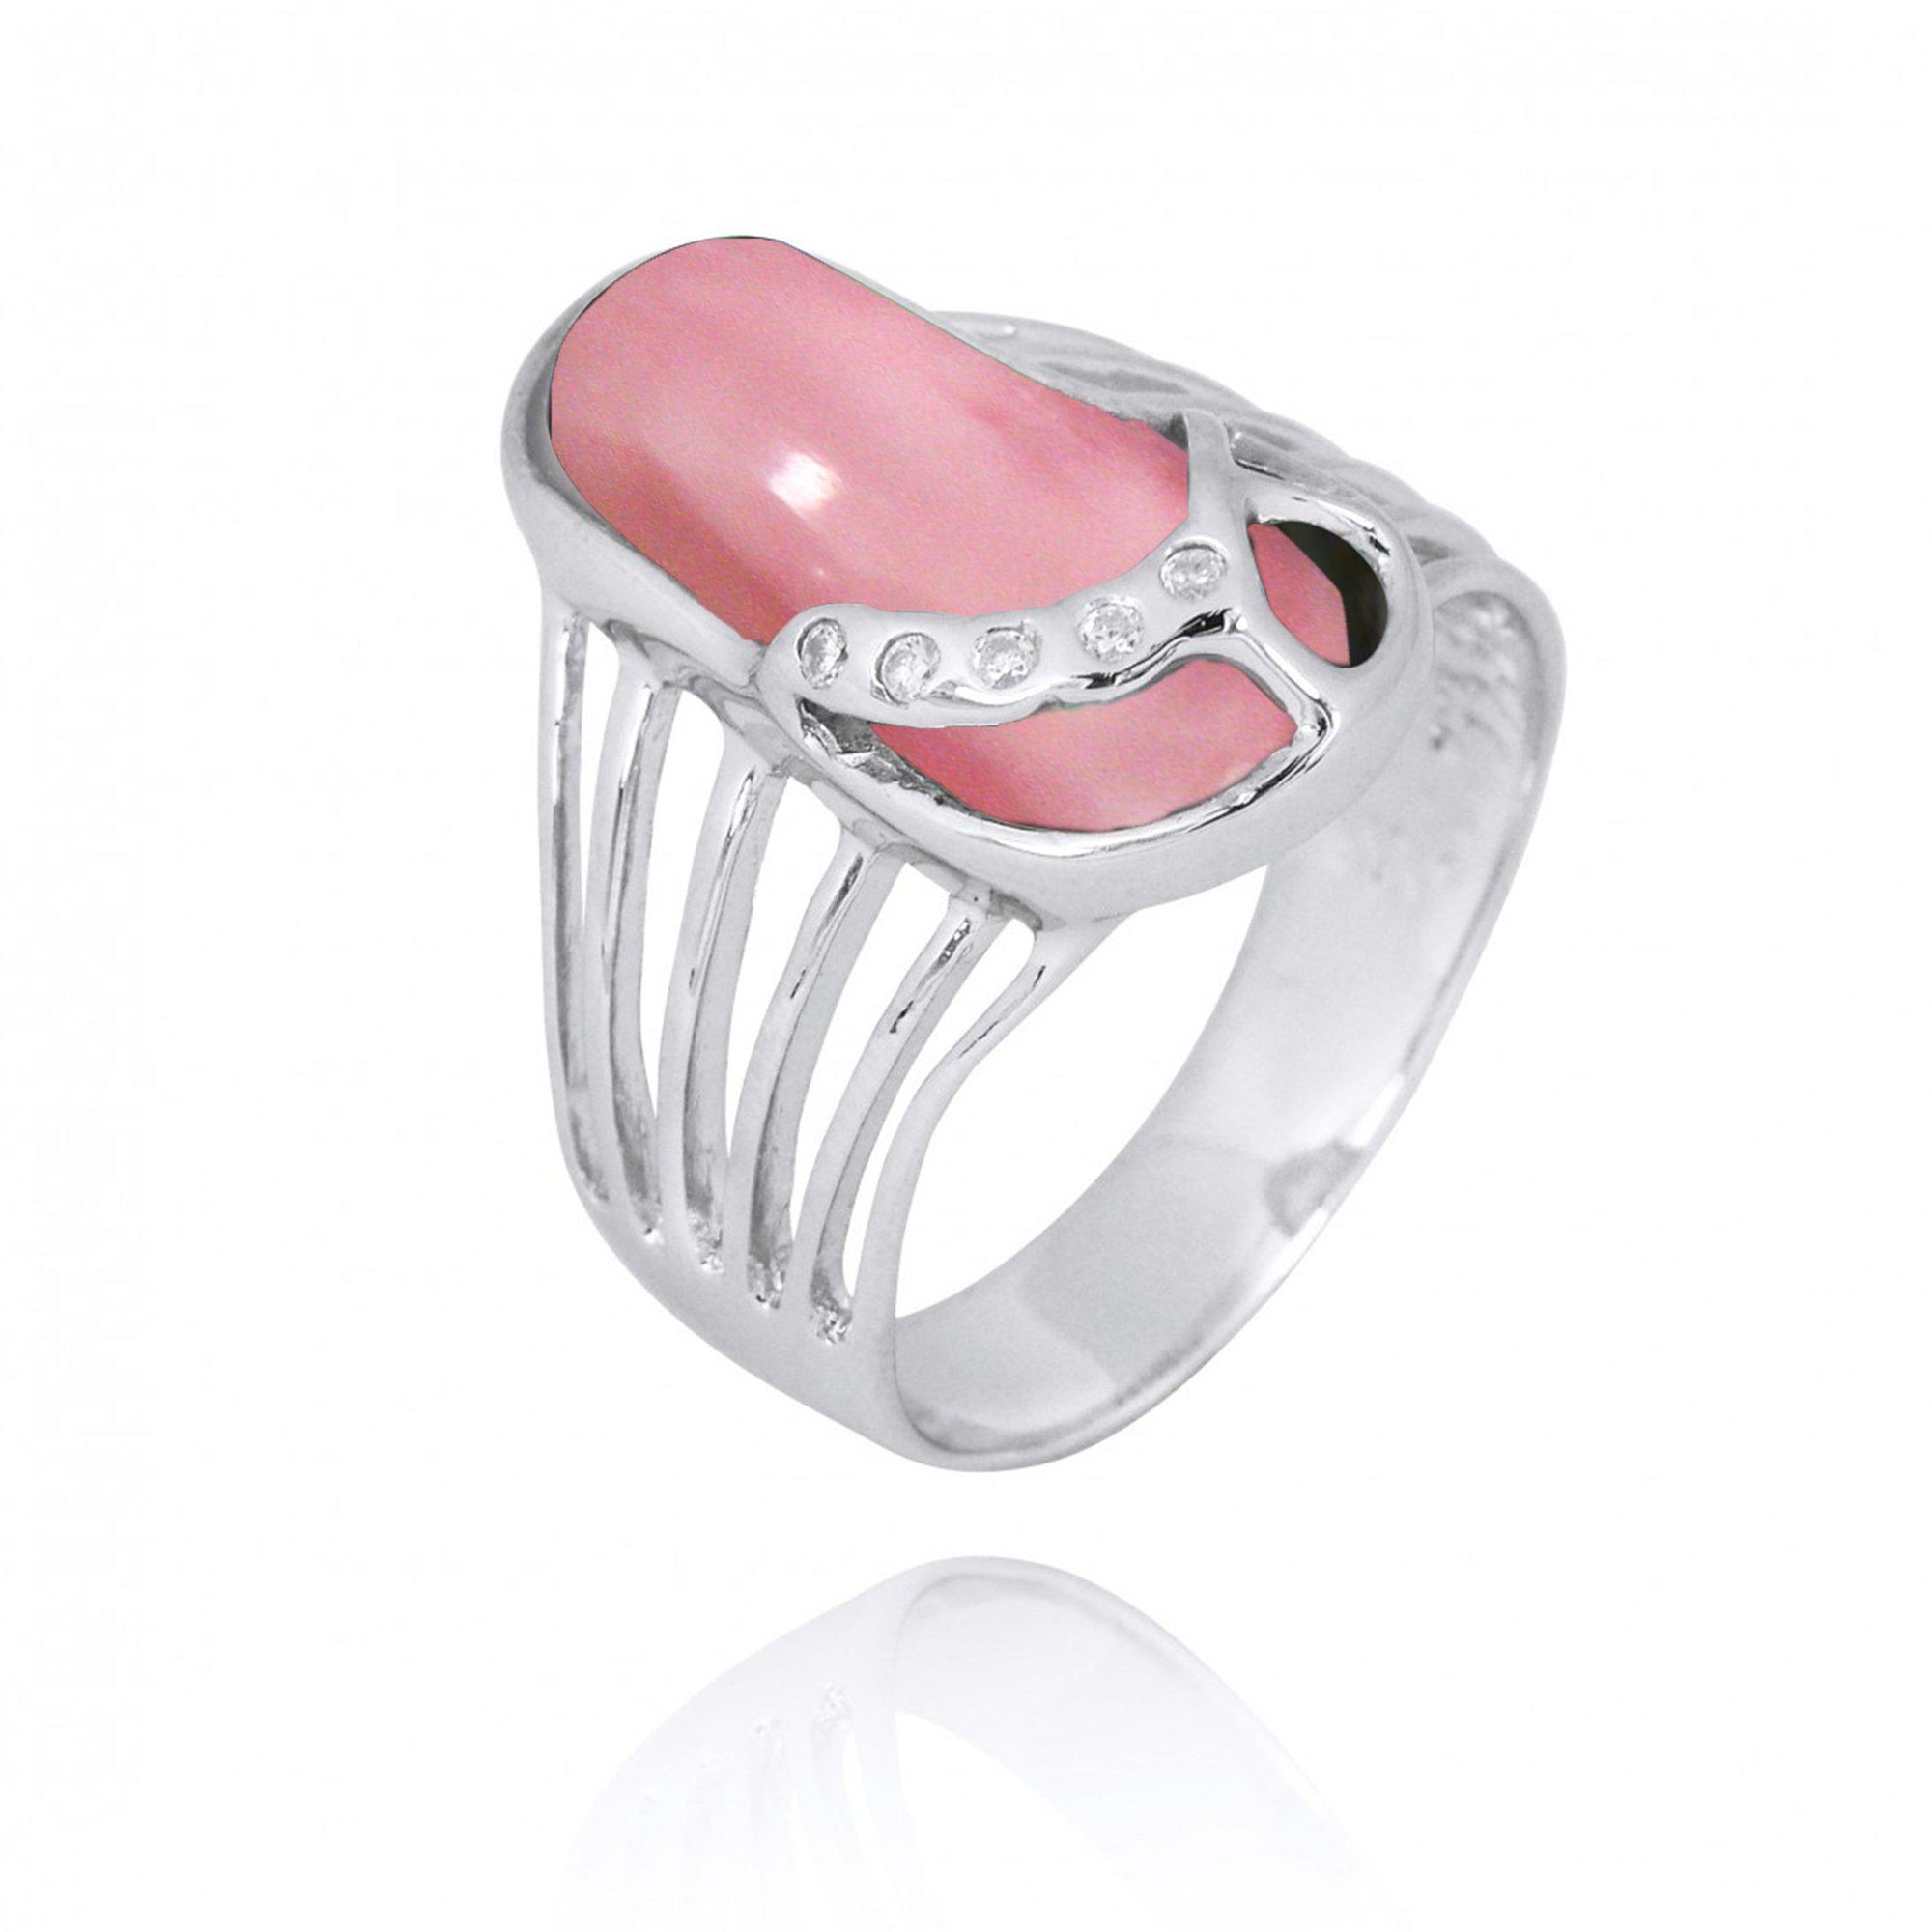 Ring-Sterling Silver Flip Flop Ring with Pink Opal and White CZ-Coastal Passion